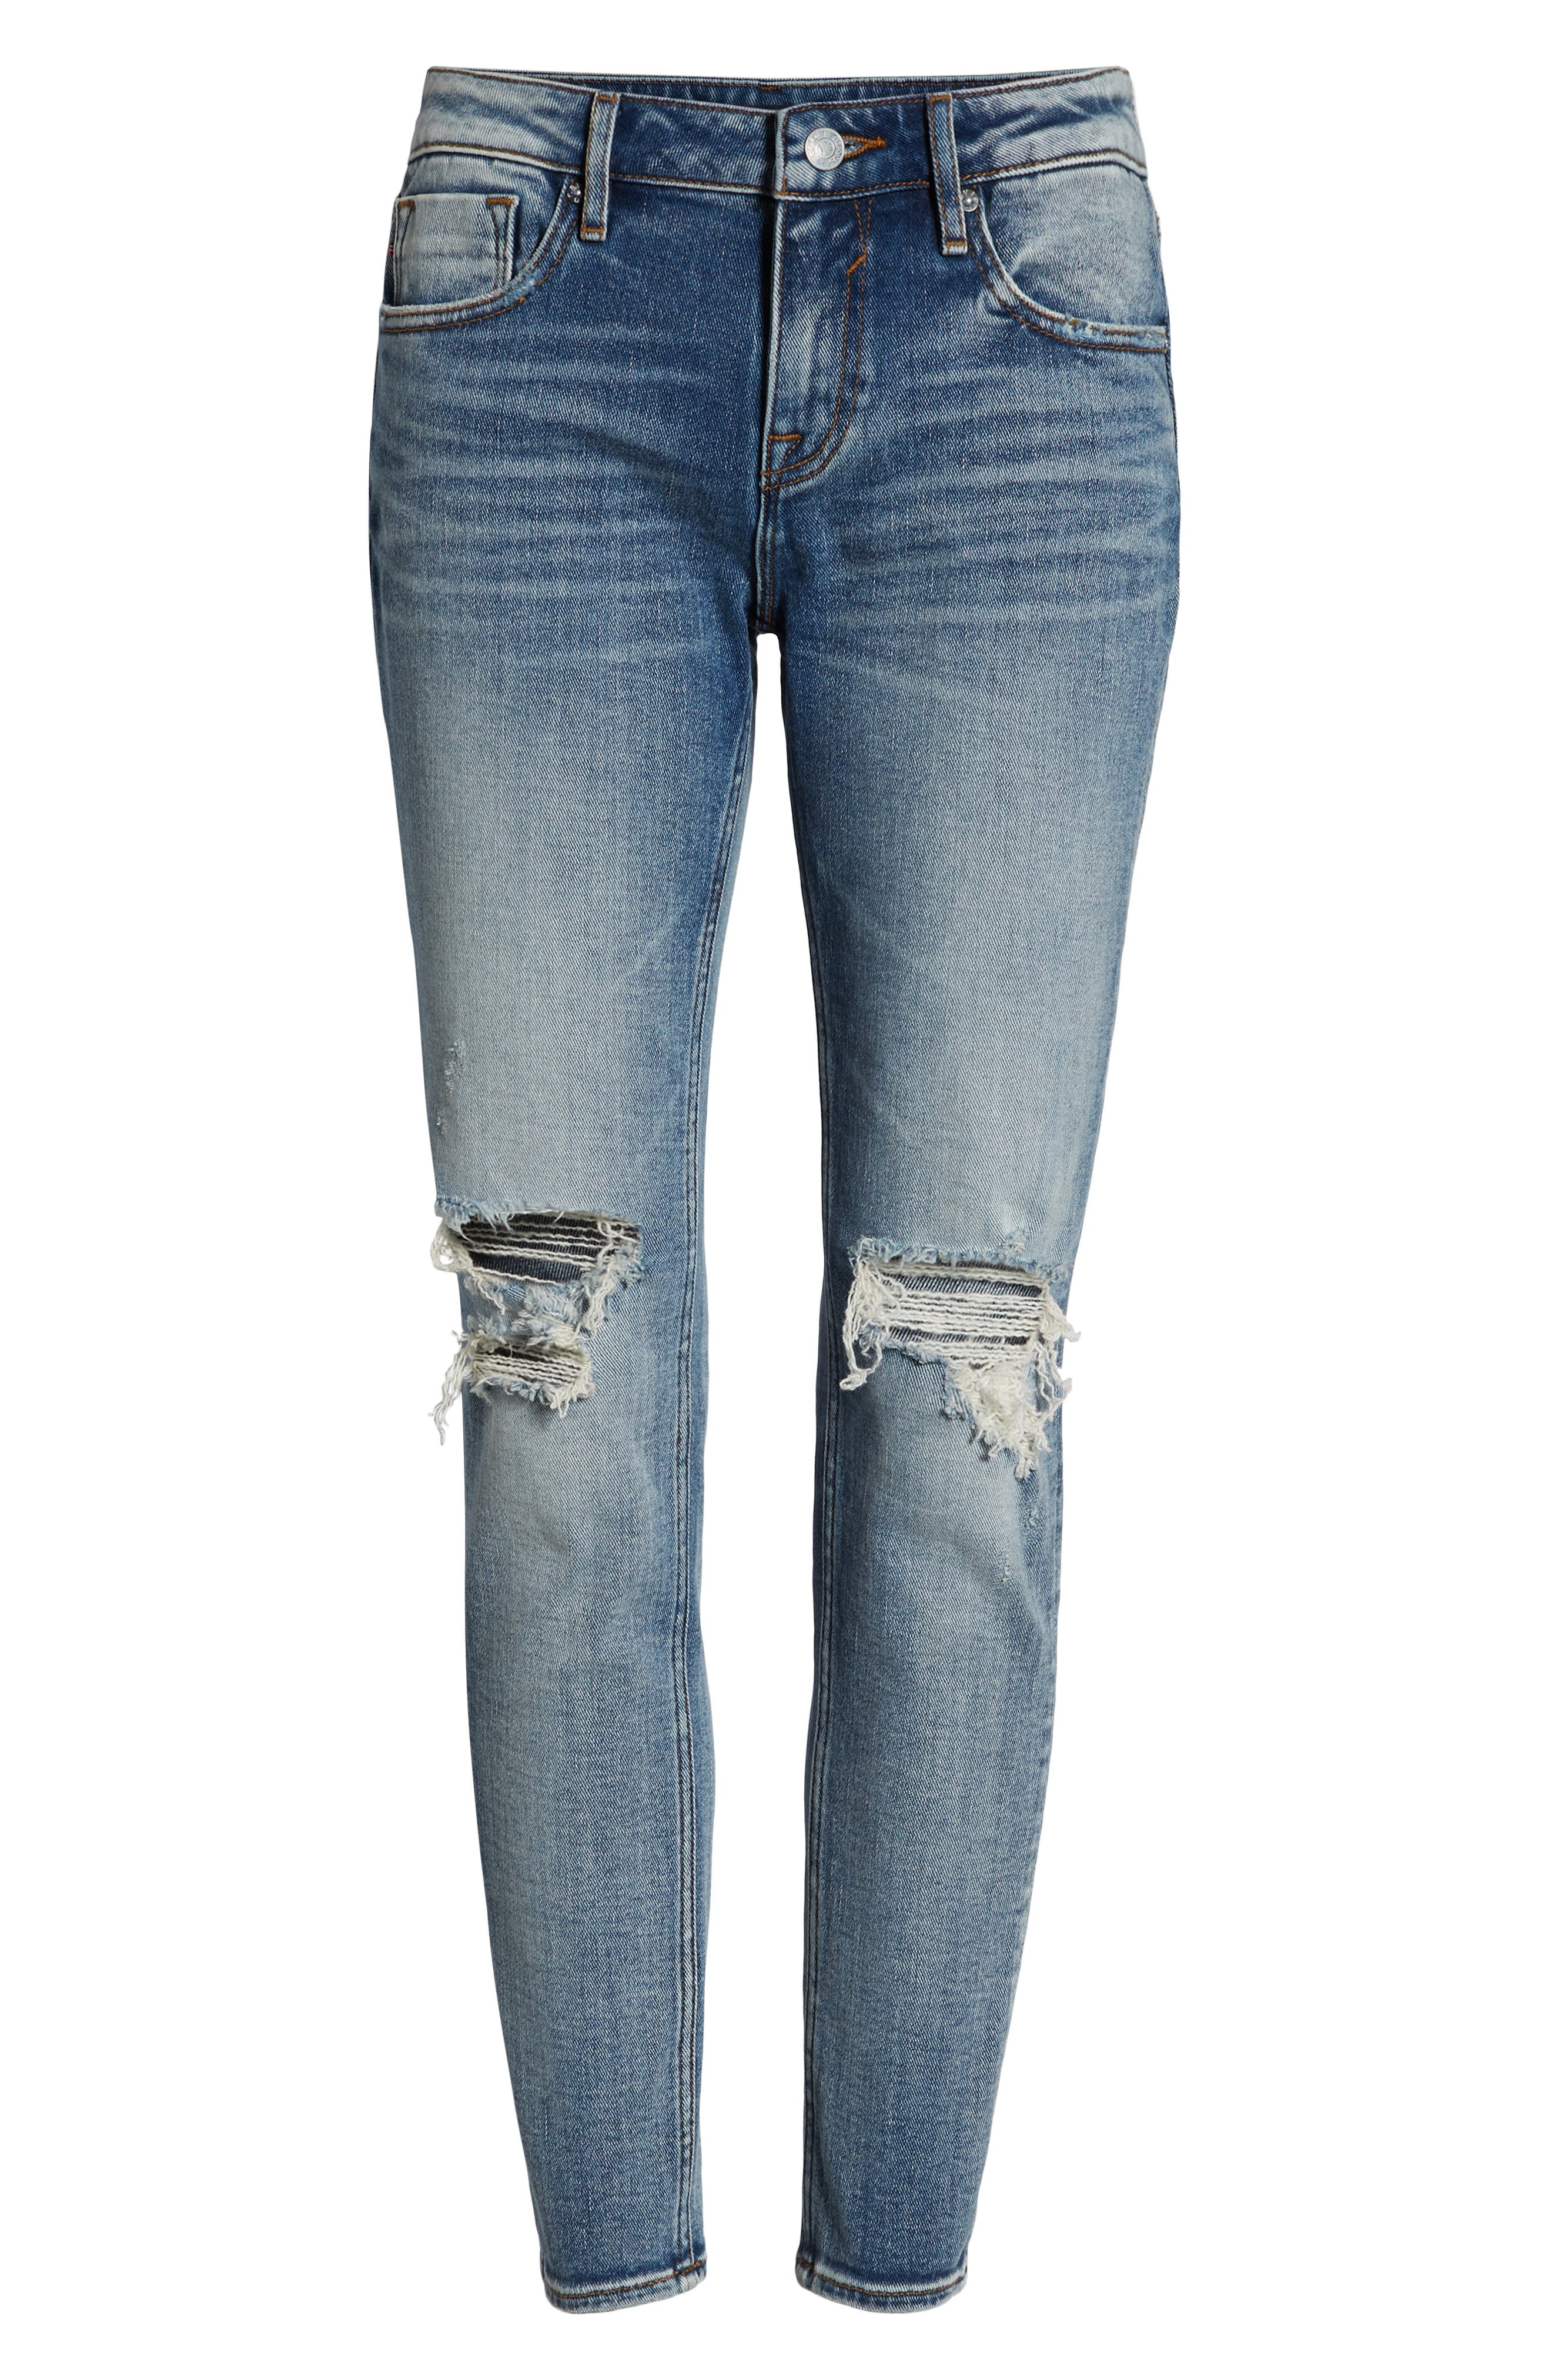 Jagger Ripped Skinny Jeans,                             Alternate thumbnail 7, color,                             LIGHT WASH